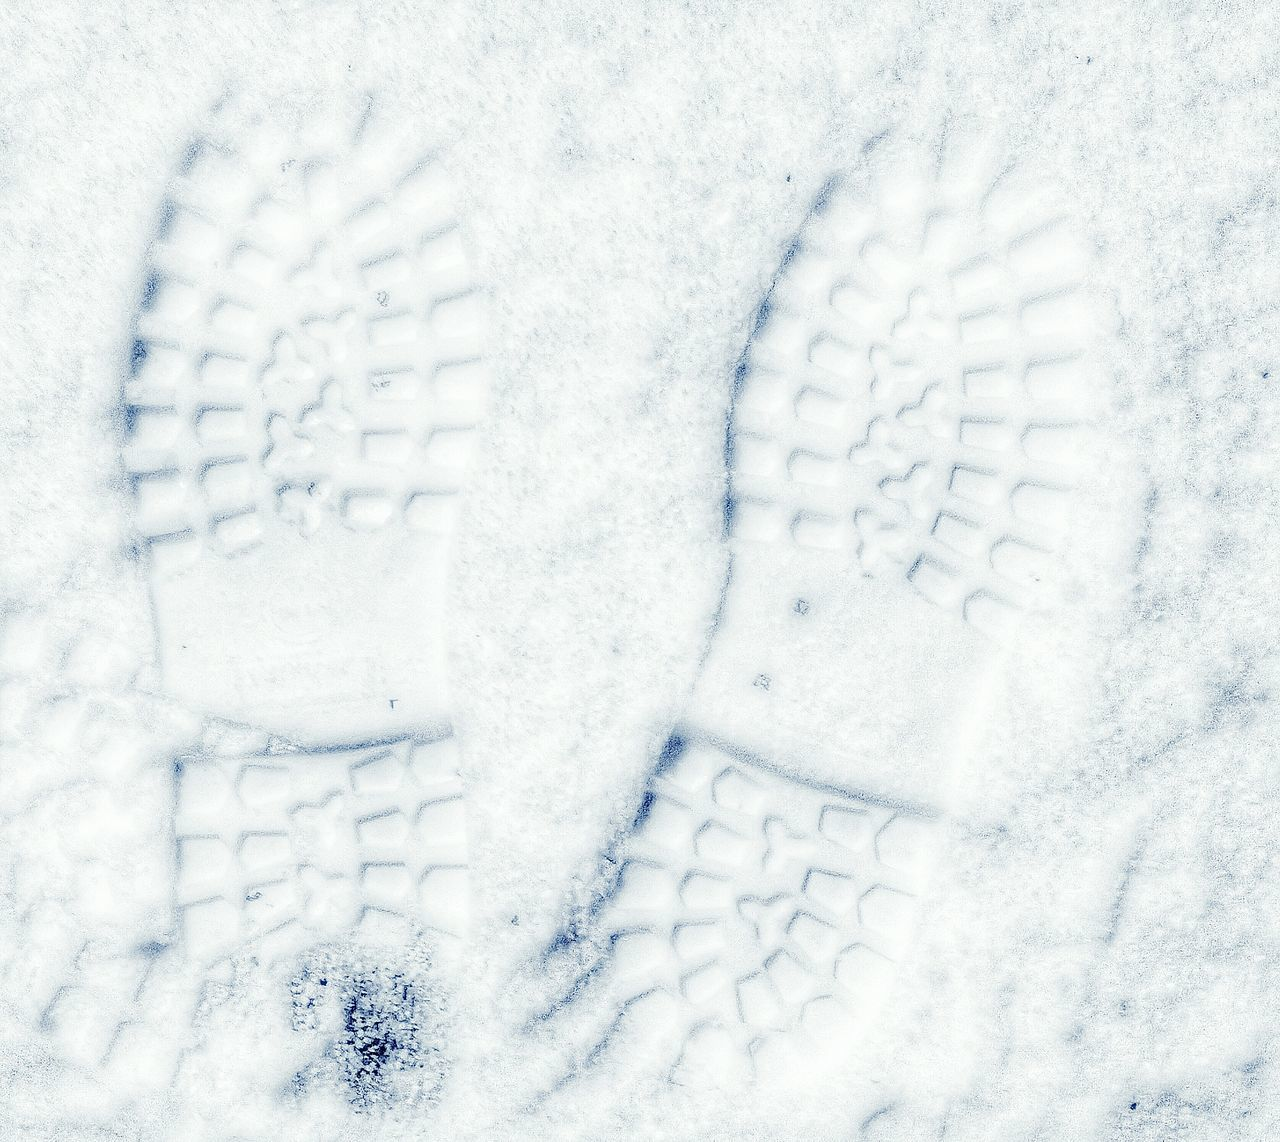 Finally. First Snow Pennsylvania Pennsylvania Beauty Snow Footprints Footprints In The Snow FootPrintsInTheSnow Footprints In Snow Winter Wonderland Winter Wintertime EyeEm Best Shots Eye4photography  Showcase: January